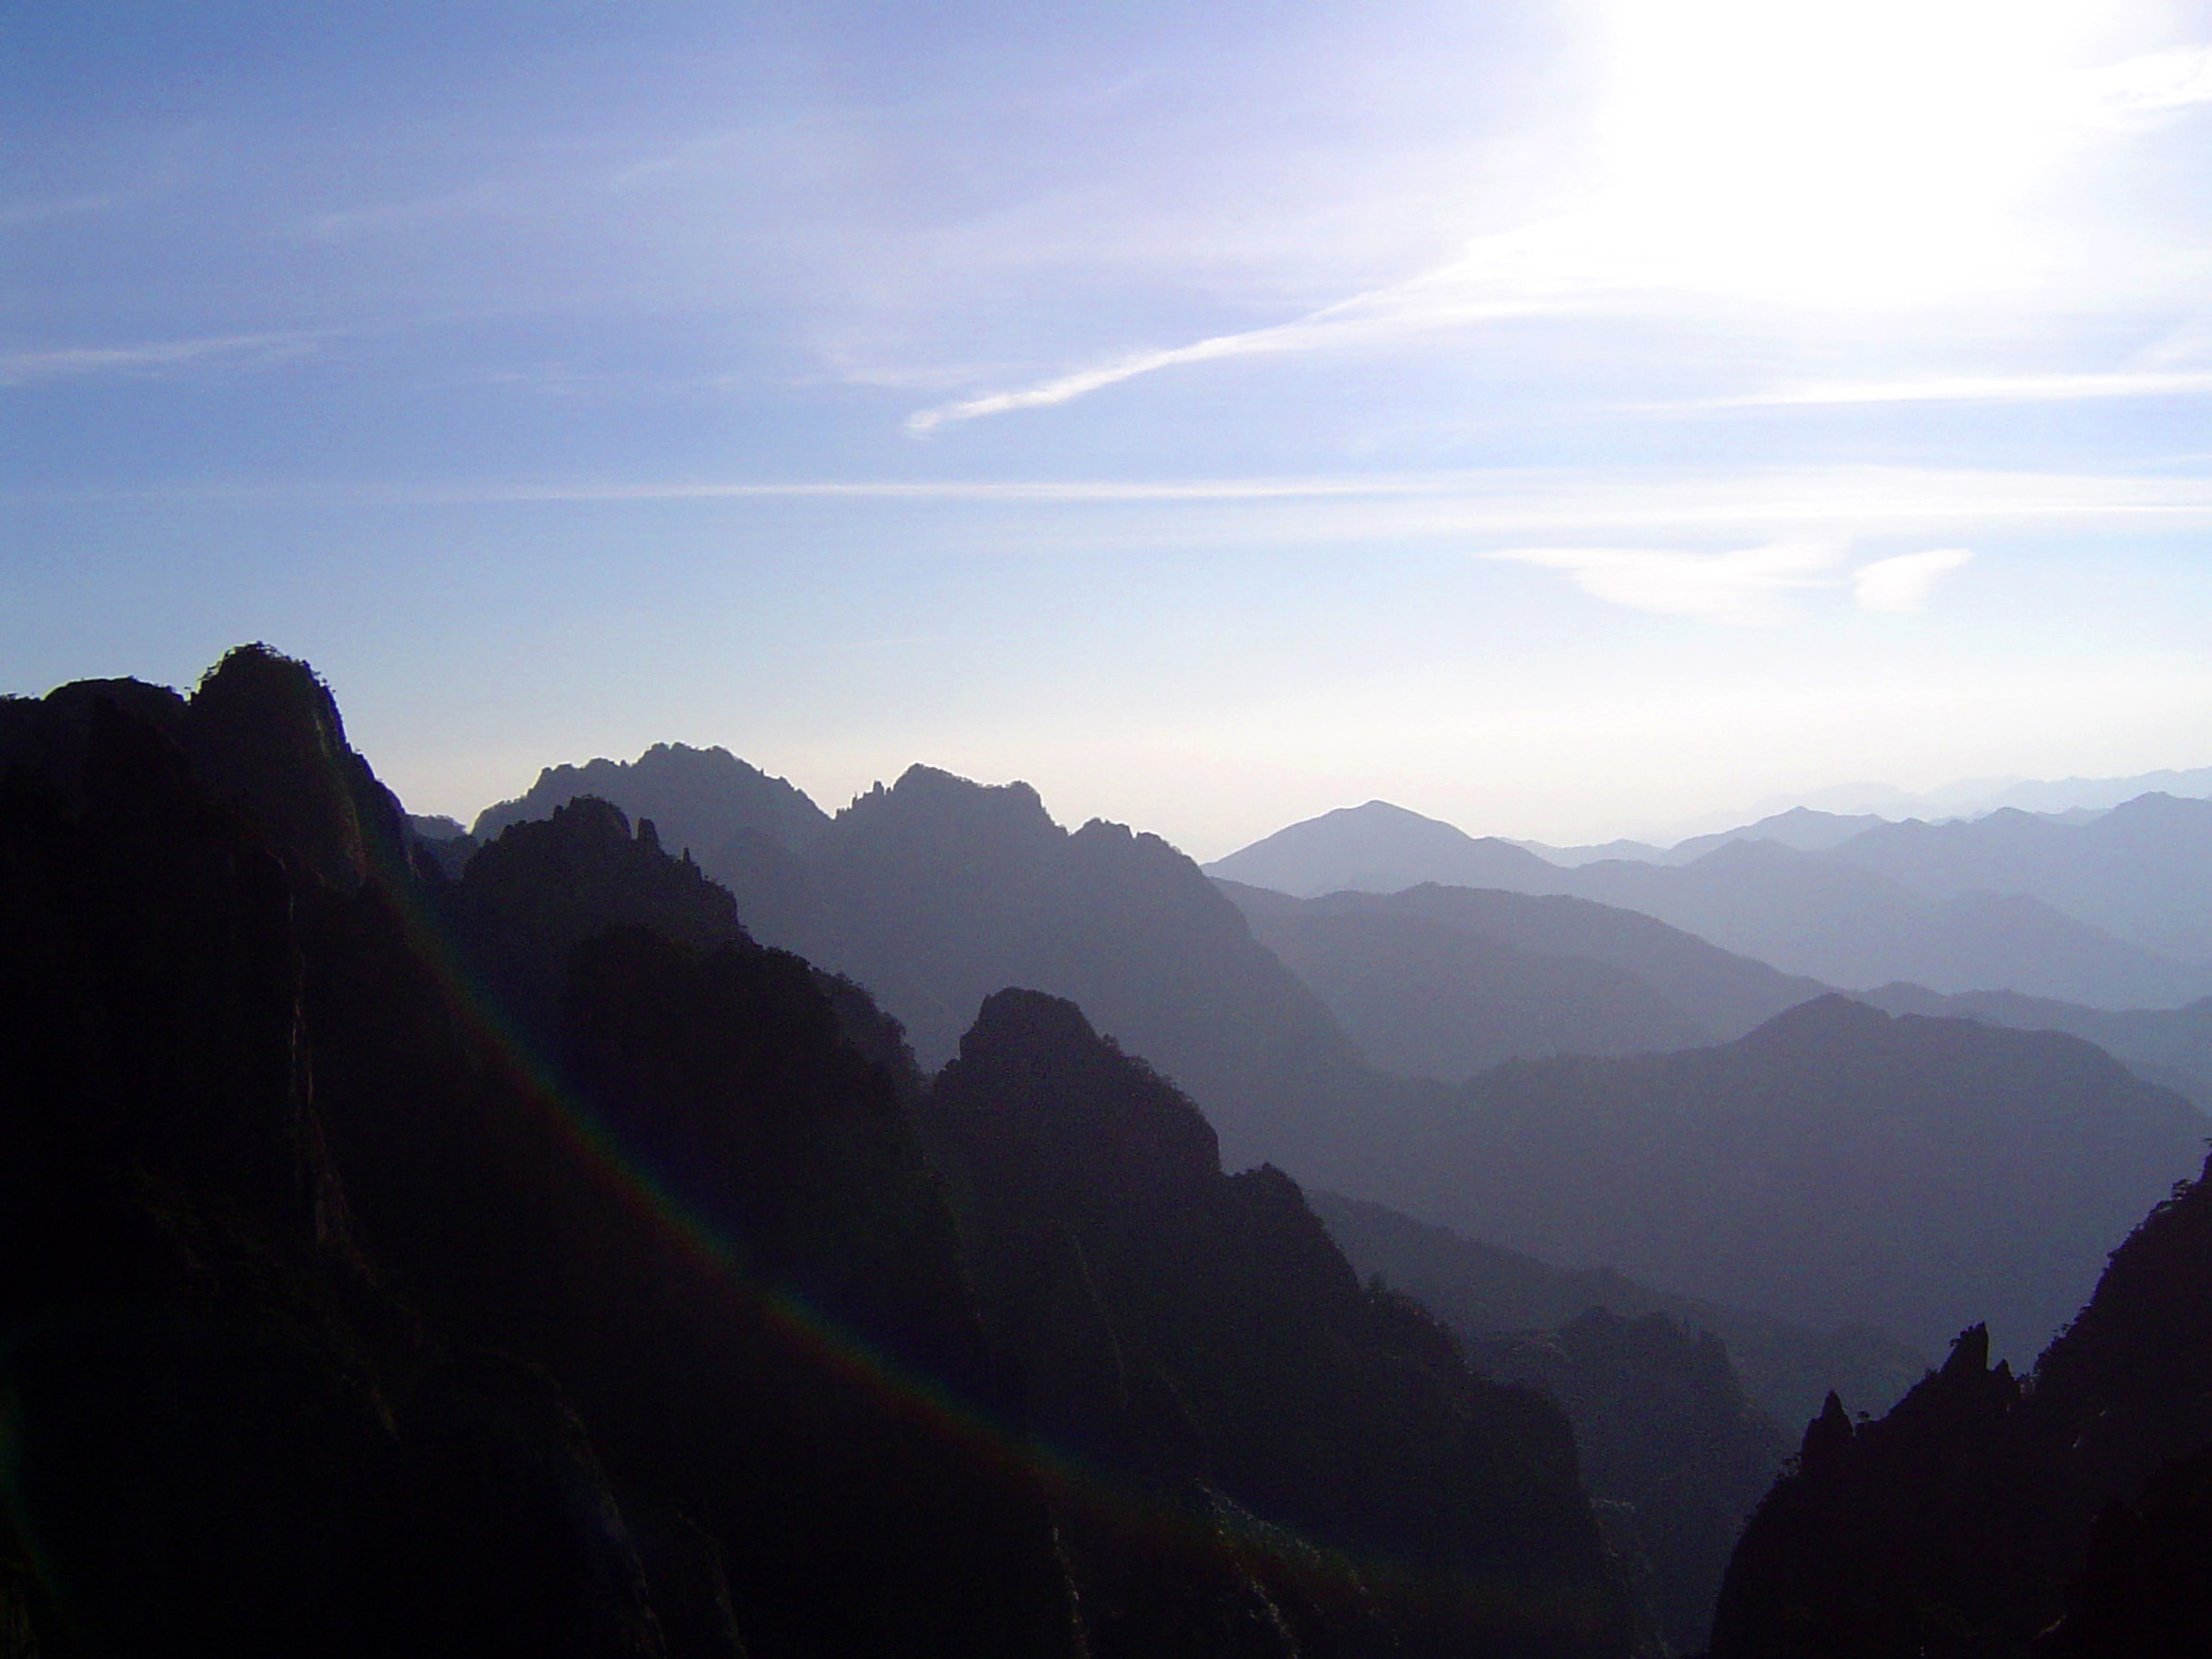 Yellow Mountain, China, vista with the Huangshan mountain range stretching away into the distance on a hazy sunny day